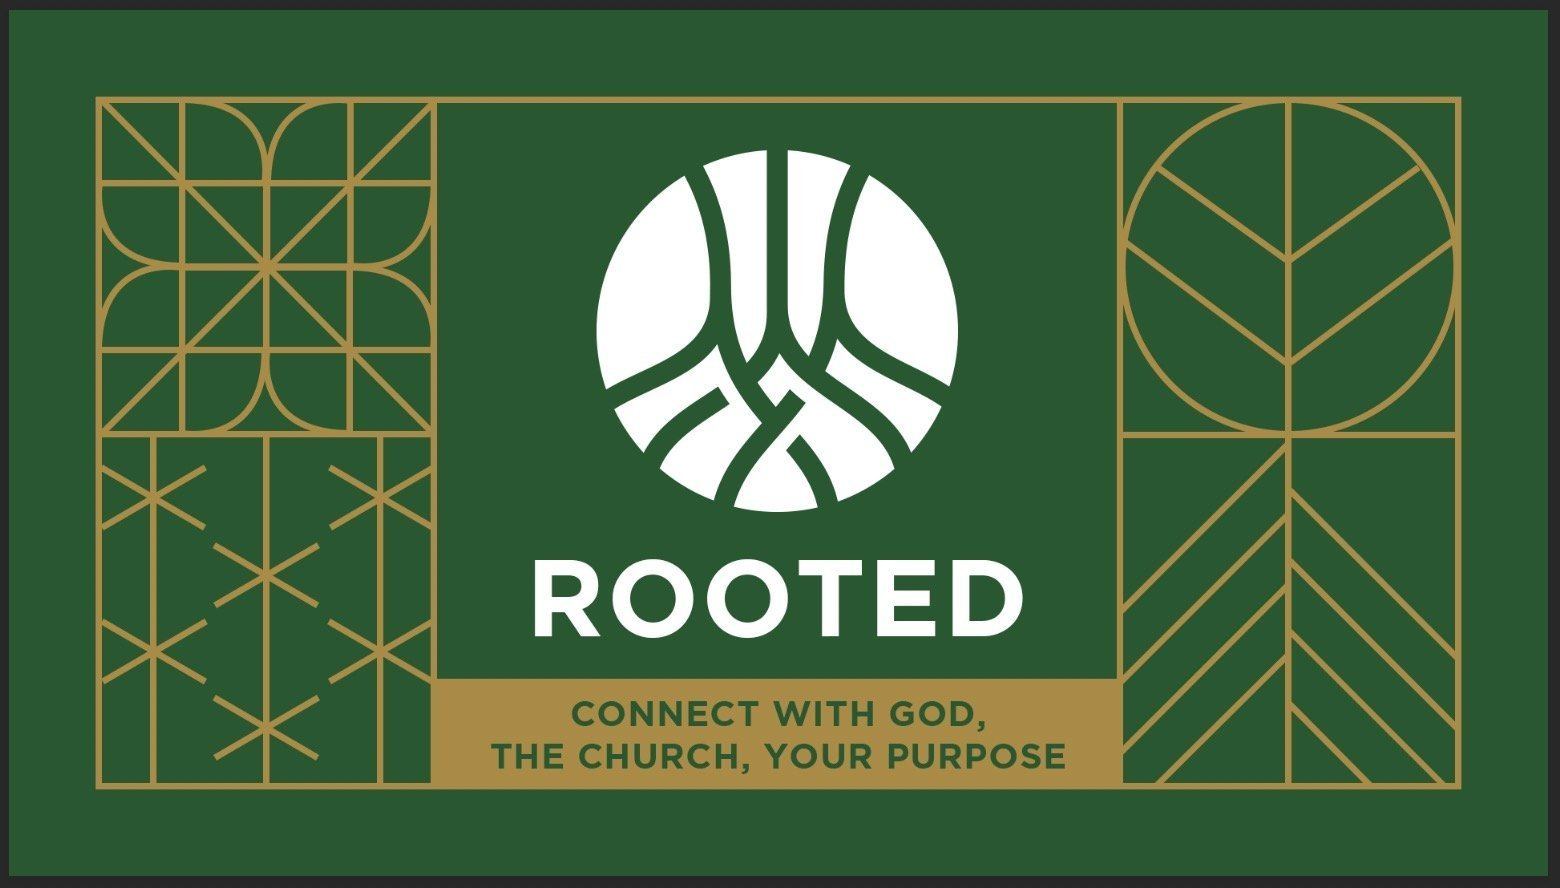 October 6, 2019 – Rooted